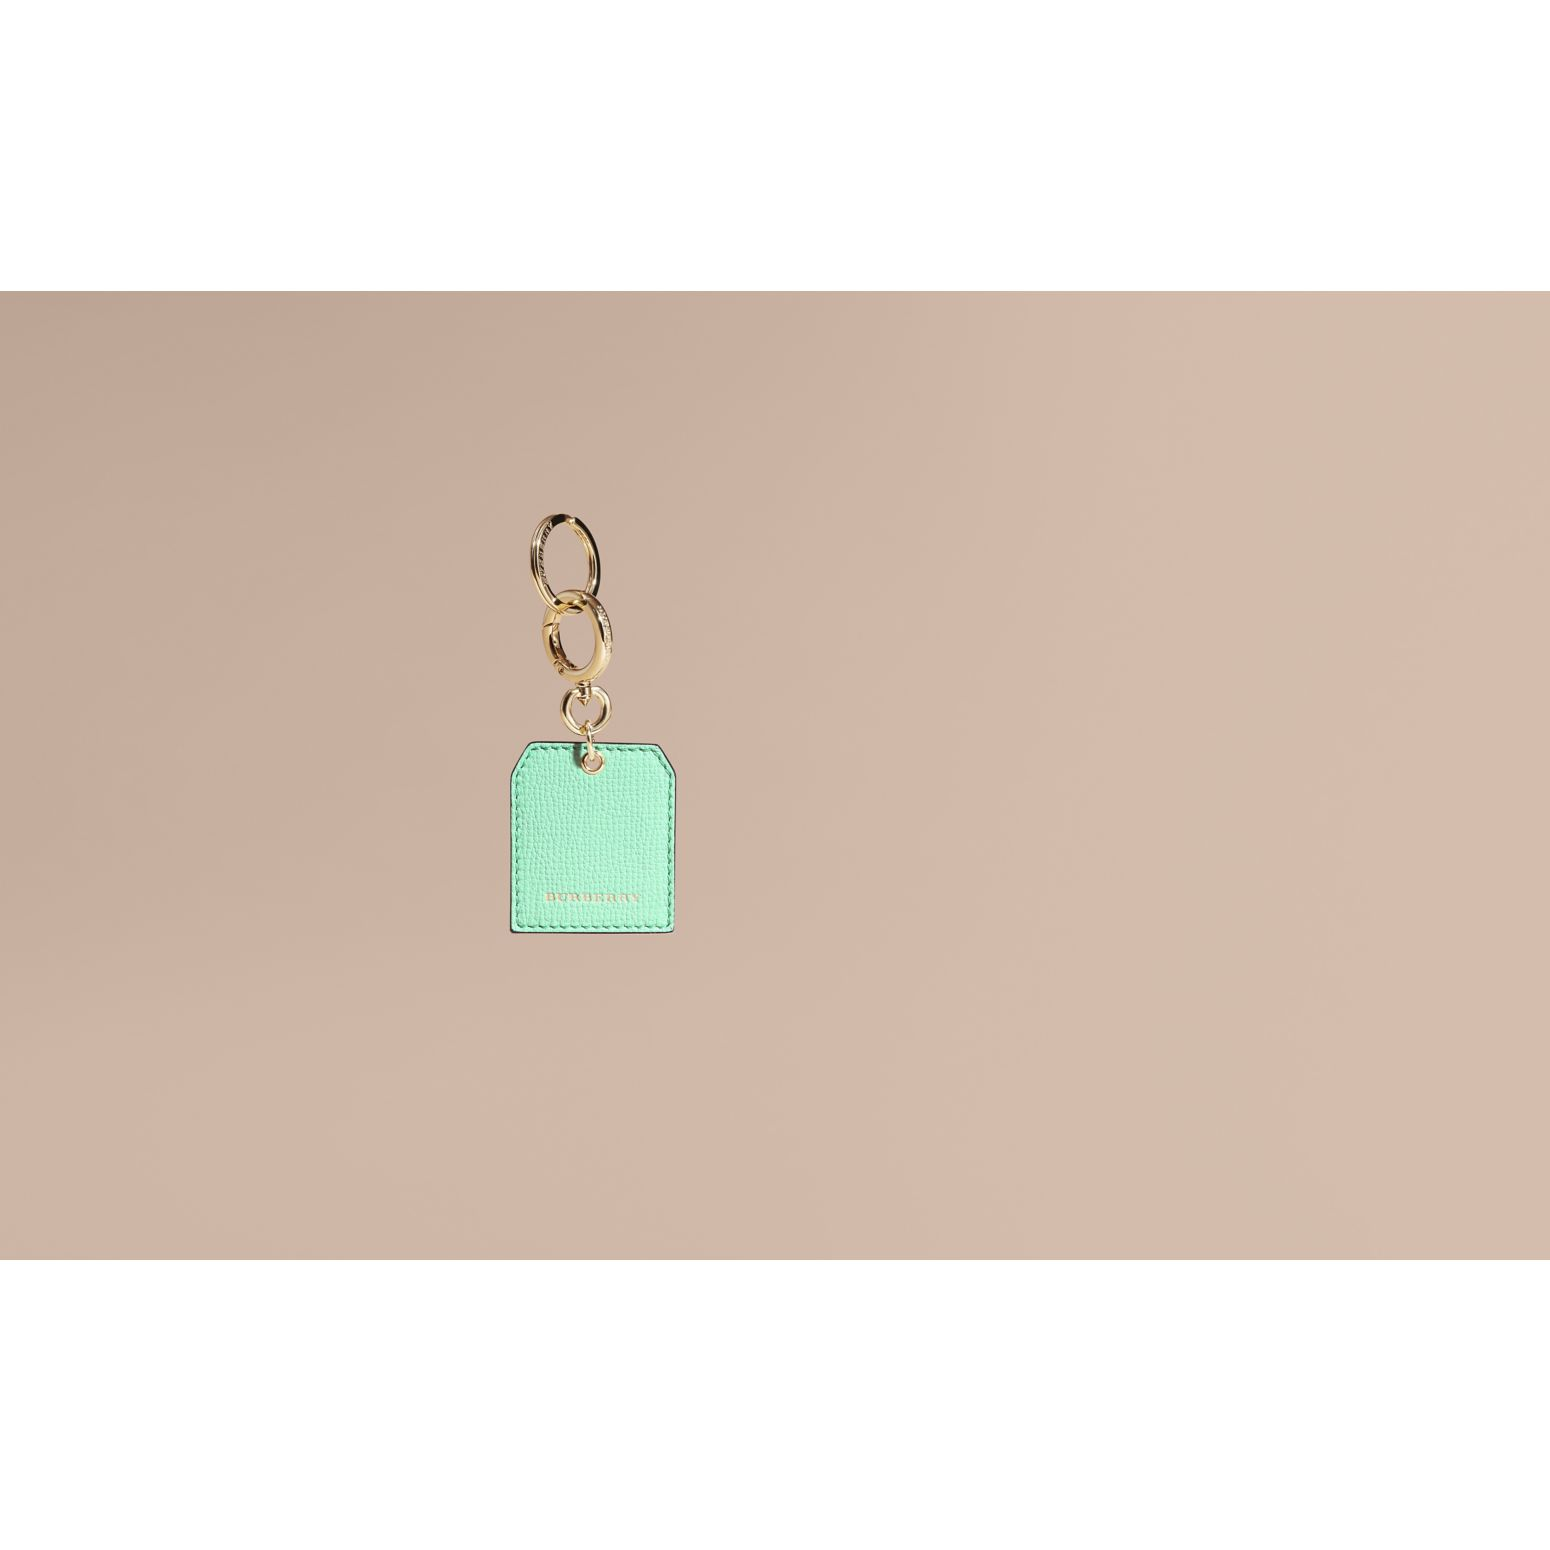 Grainy Leather Key Charm in Light Mint | Burberry - gallery image 2